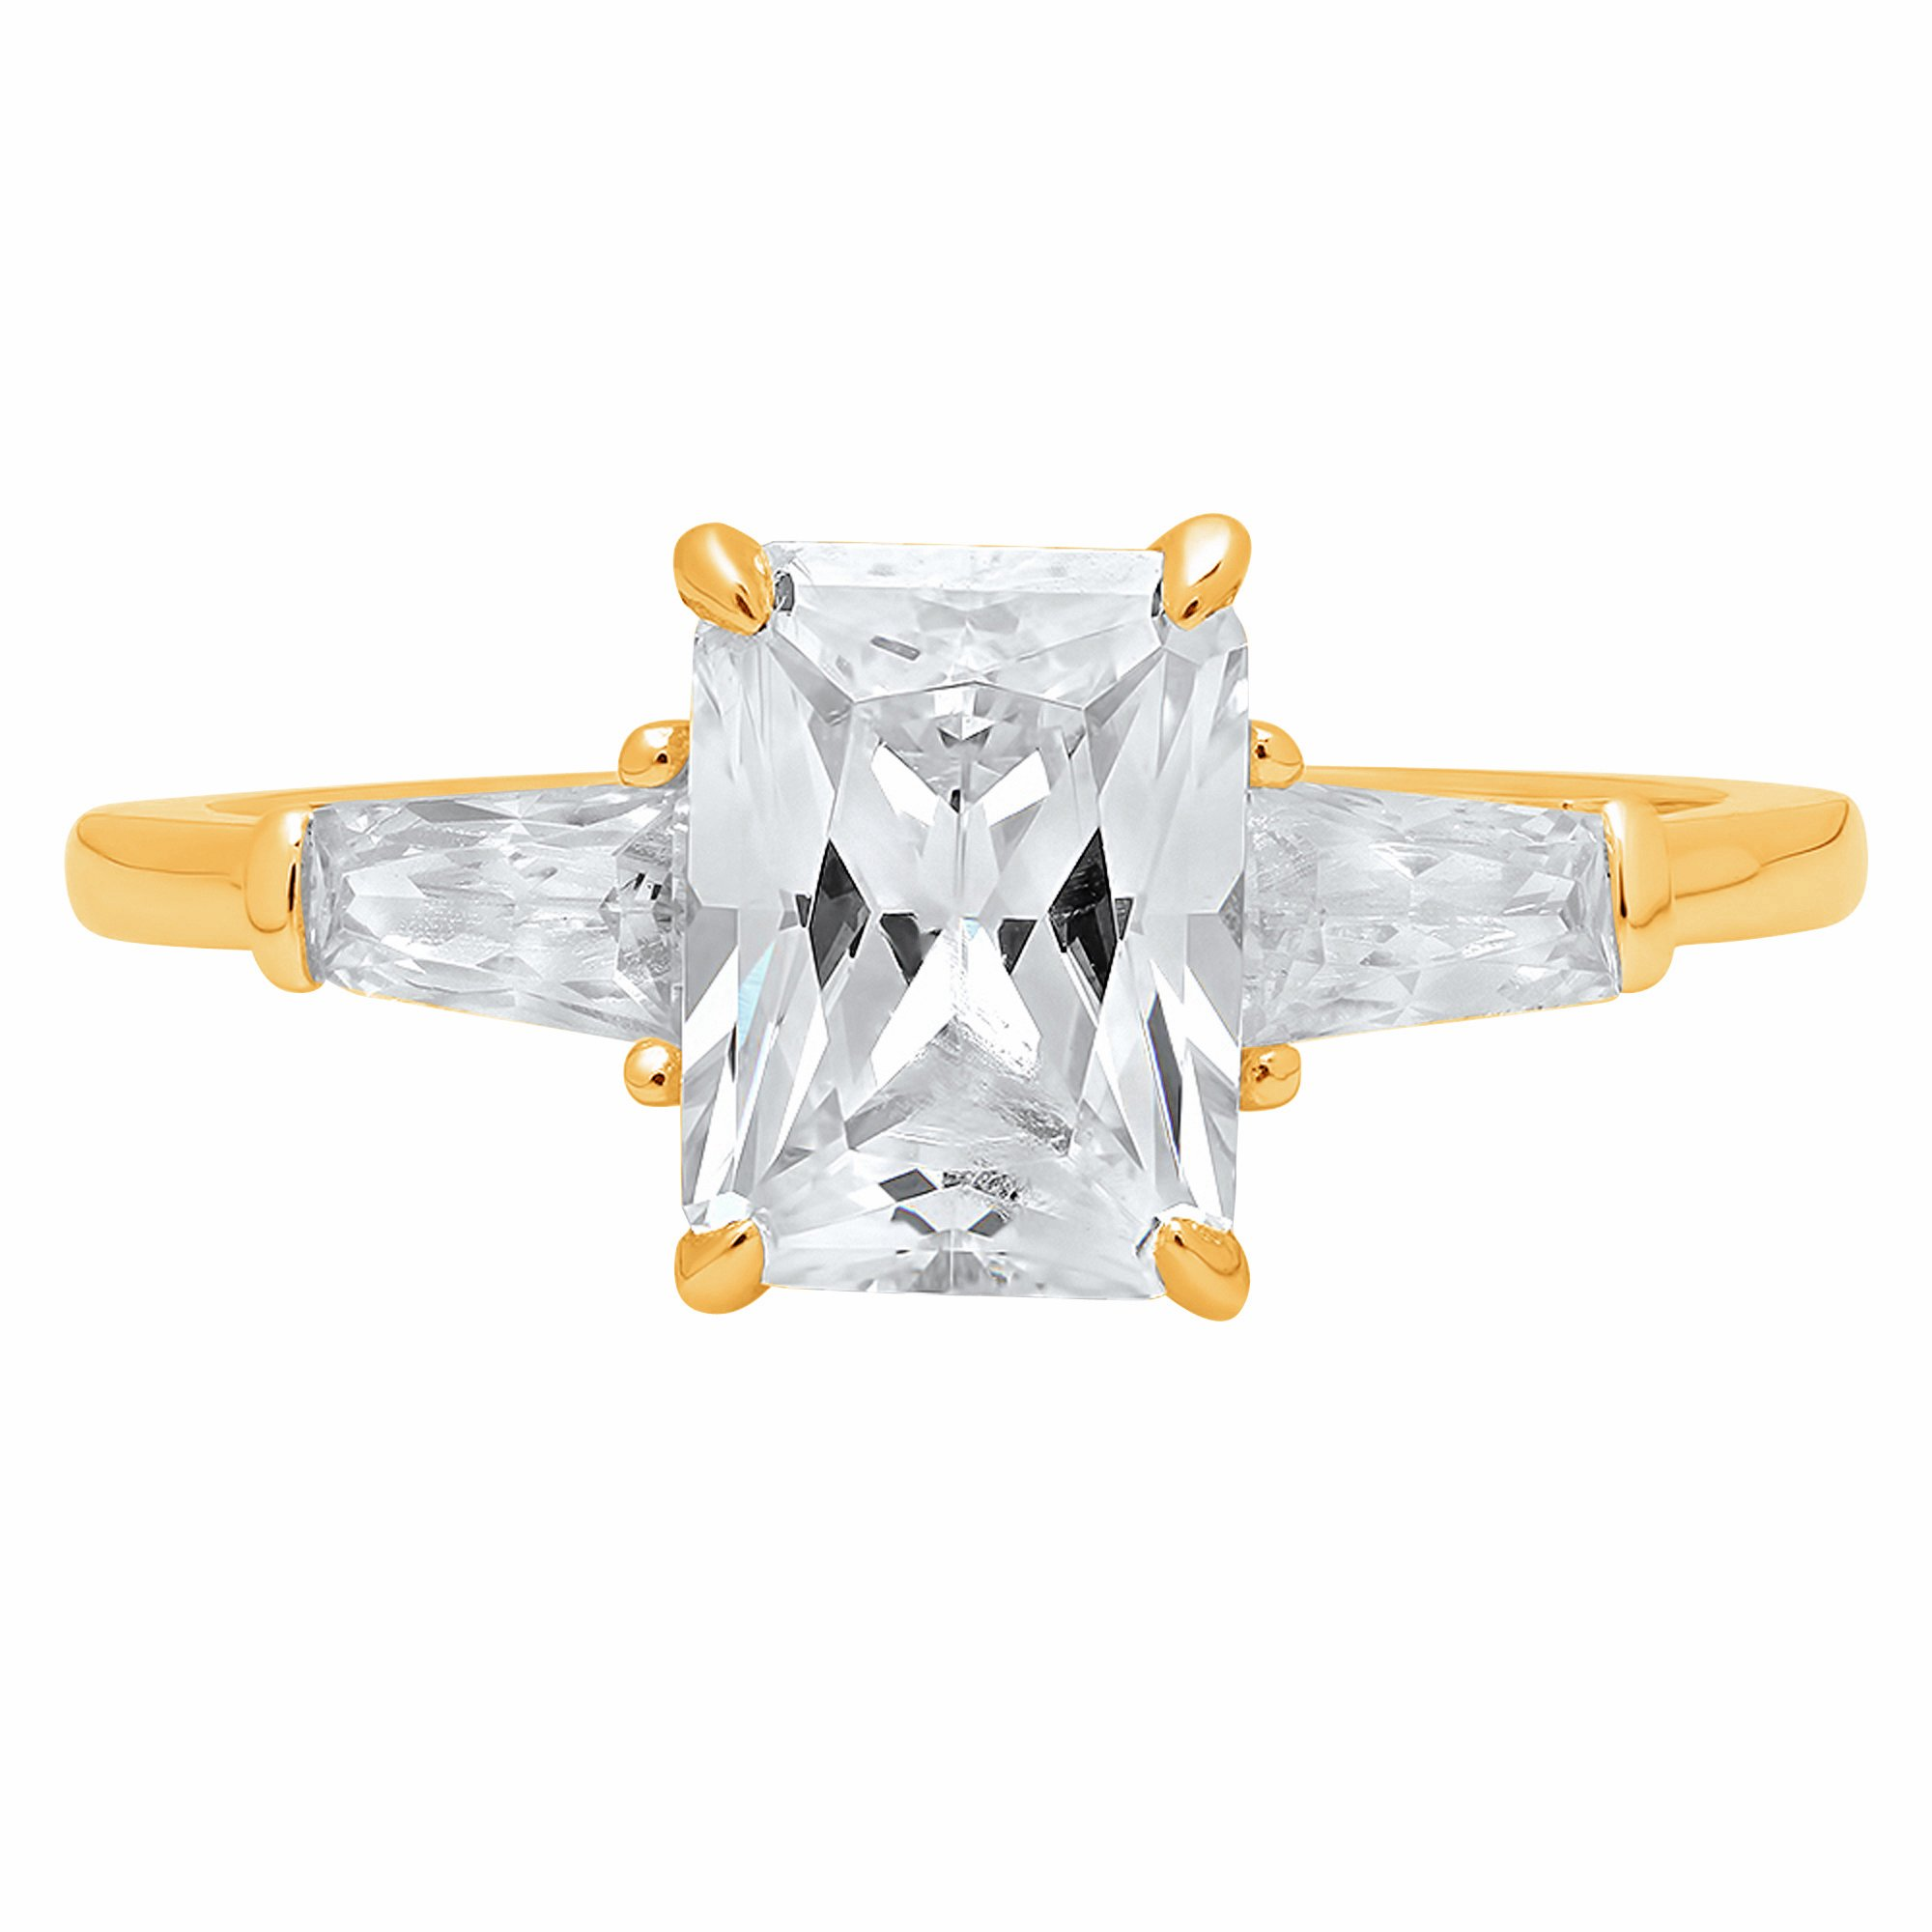 1.9ct Brilliant Emerald Cut Solitaire 3-Stone Engagement Bridal Wedding Anniversary Promise Band Ring Solid 14K Yellow Gold for Women, 6.5 by Clara Pucci